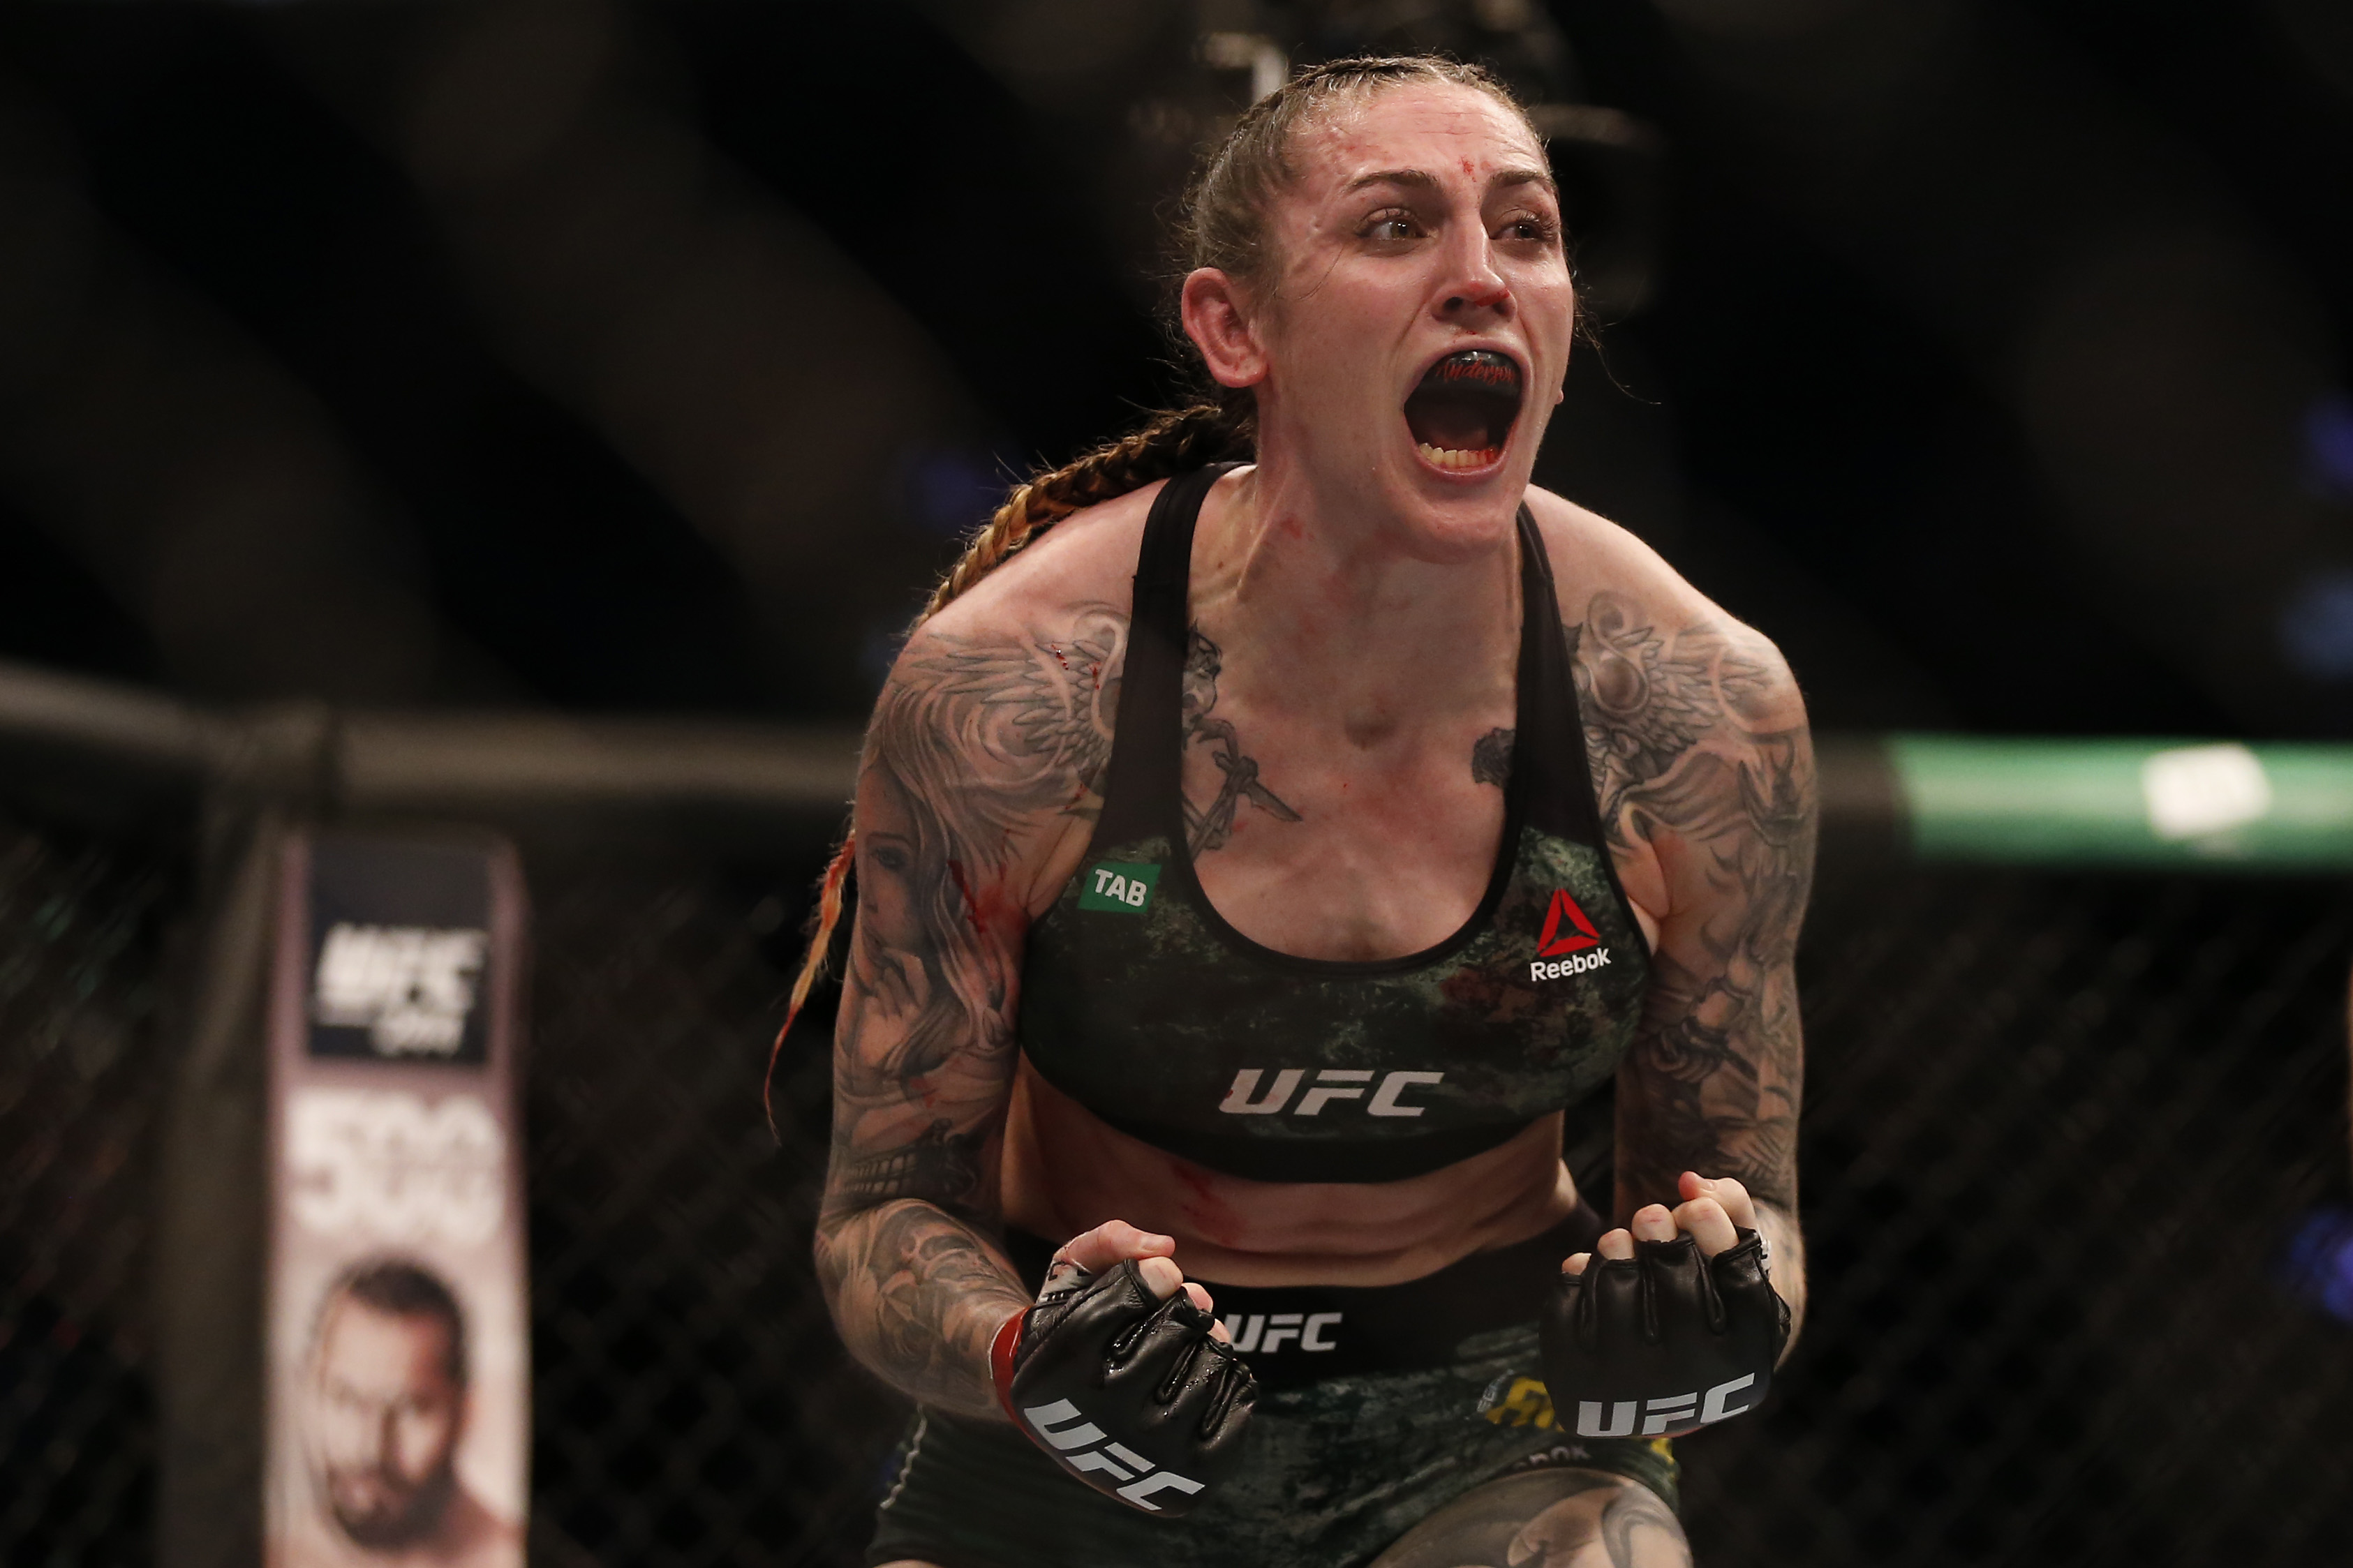 Megan Anderson celebrating a UFC win